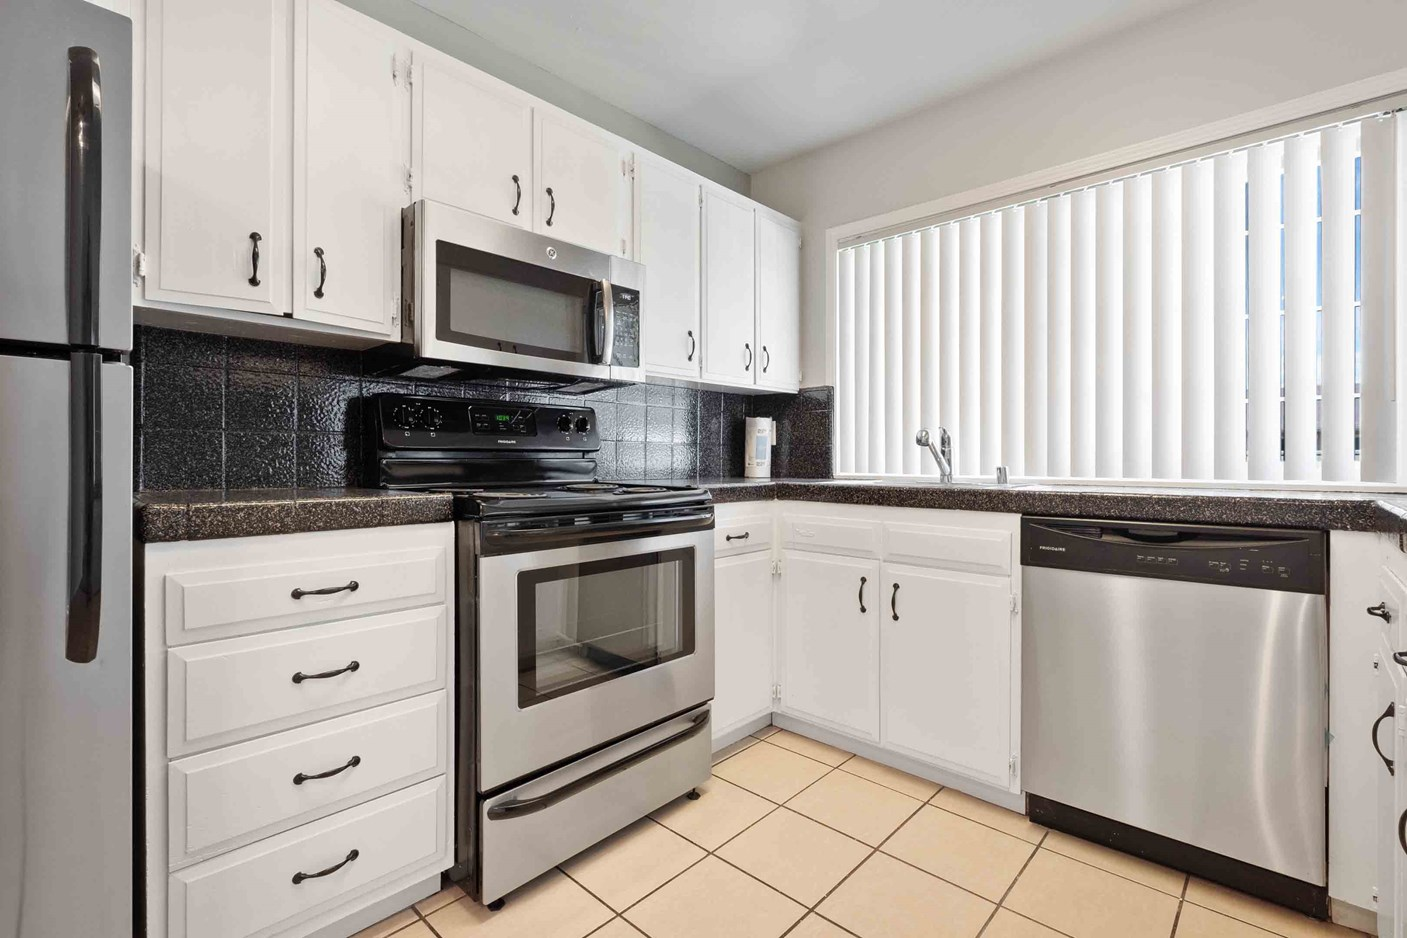 Mission Park Corporate Rental- Sample Image of Gilroy, CA Insurance Housing